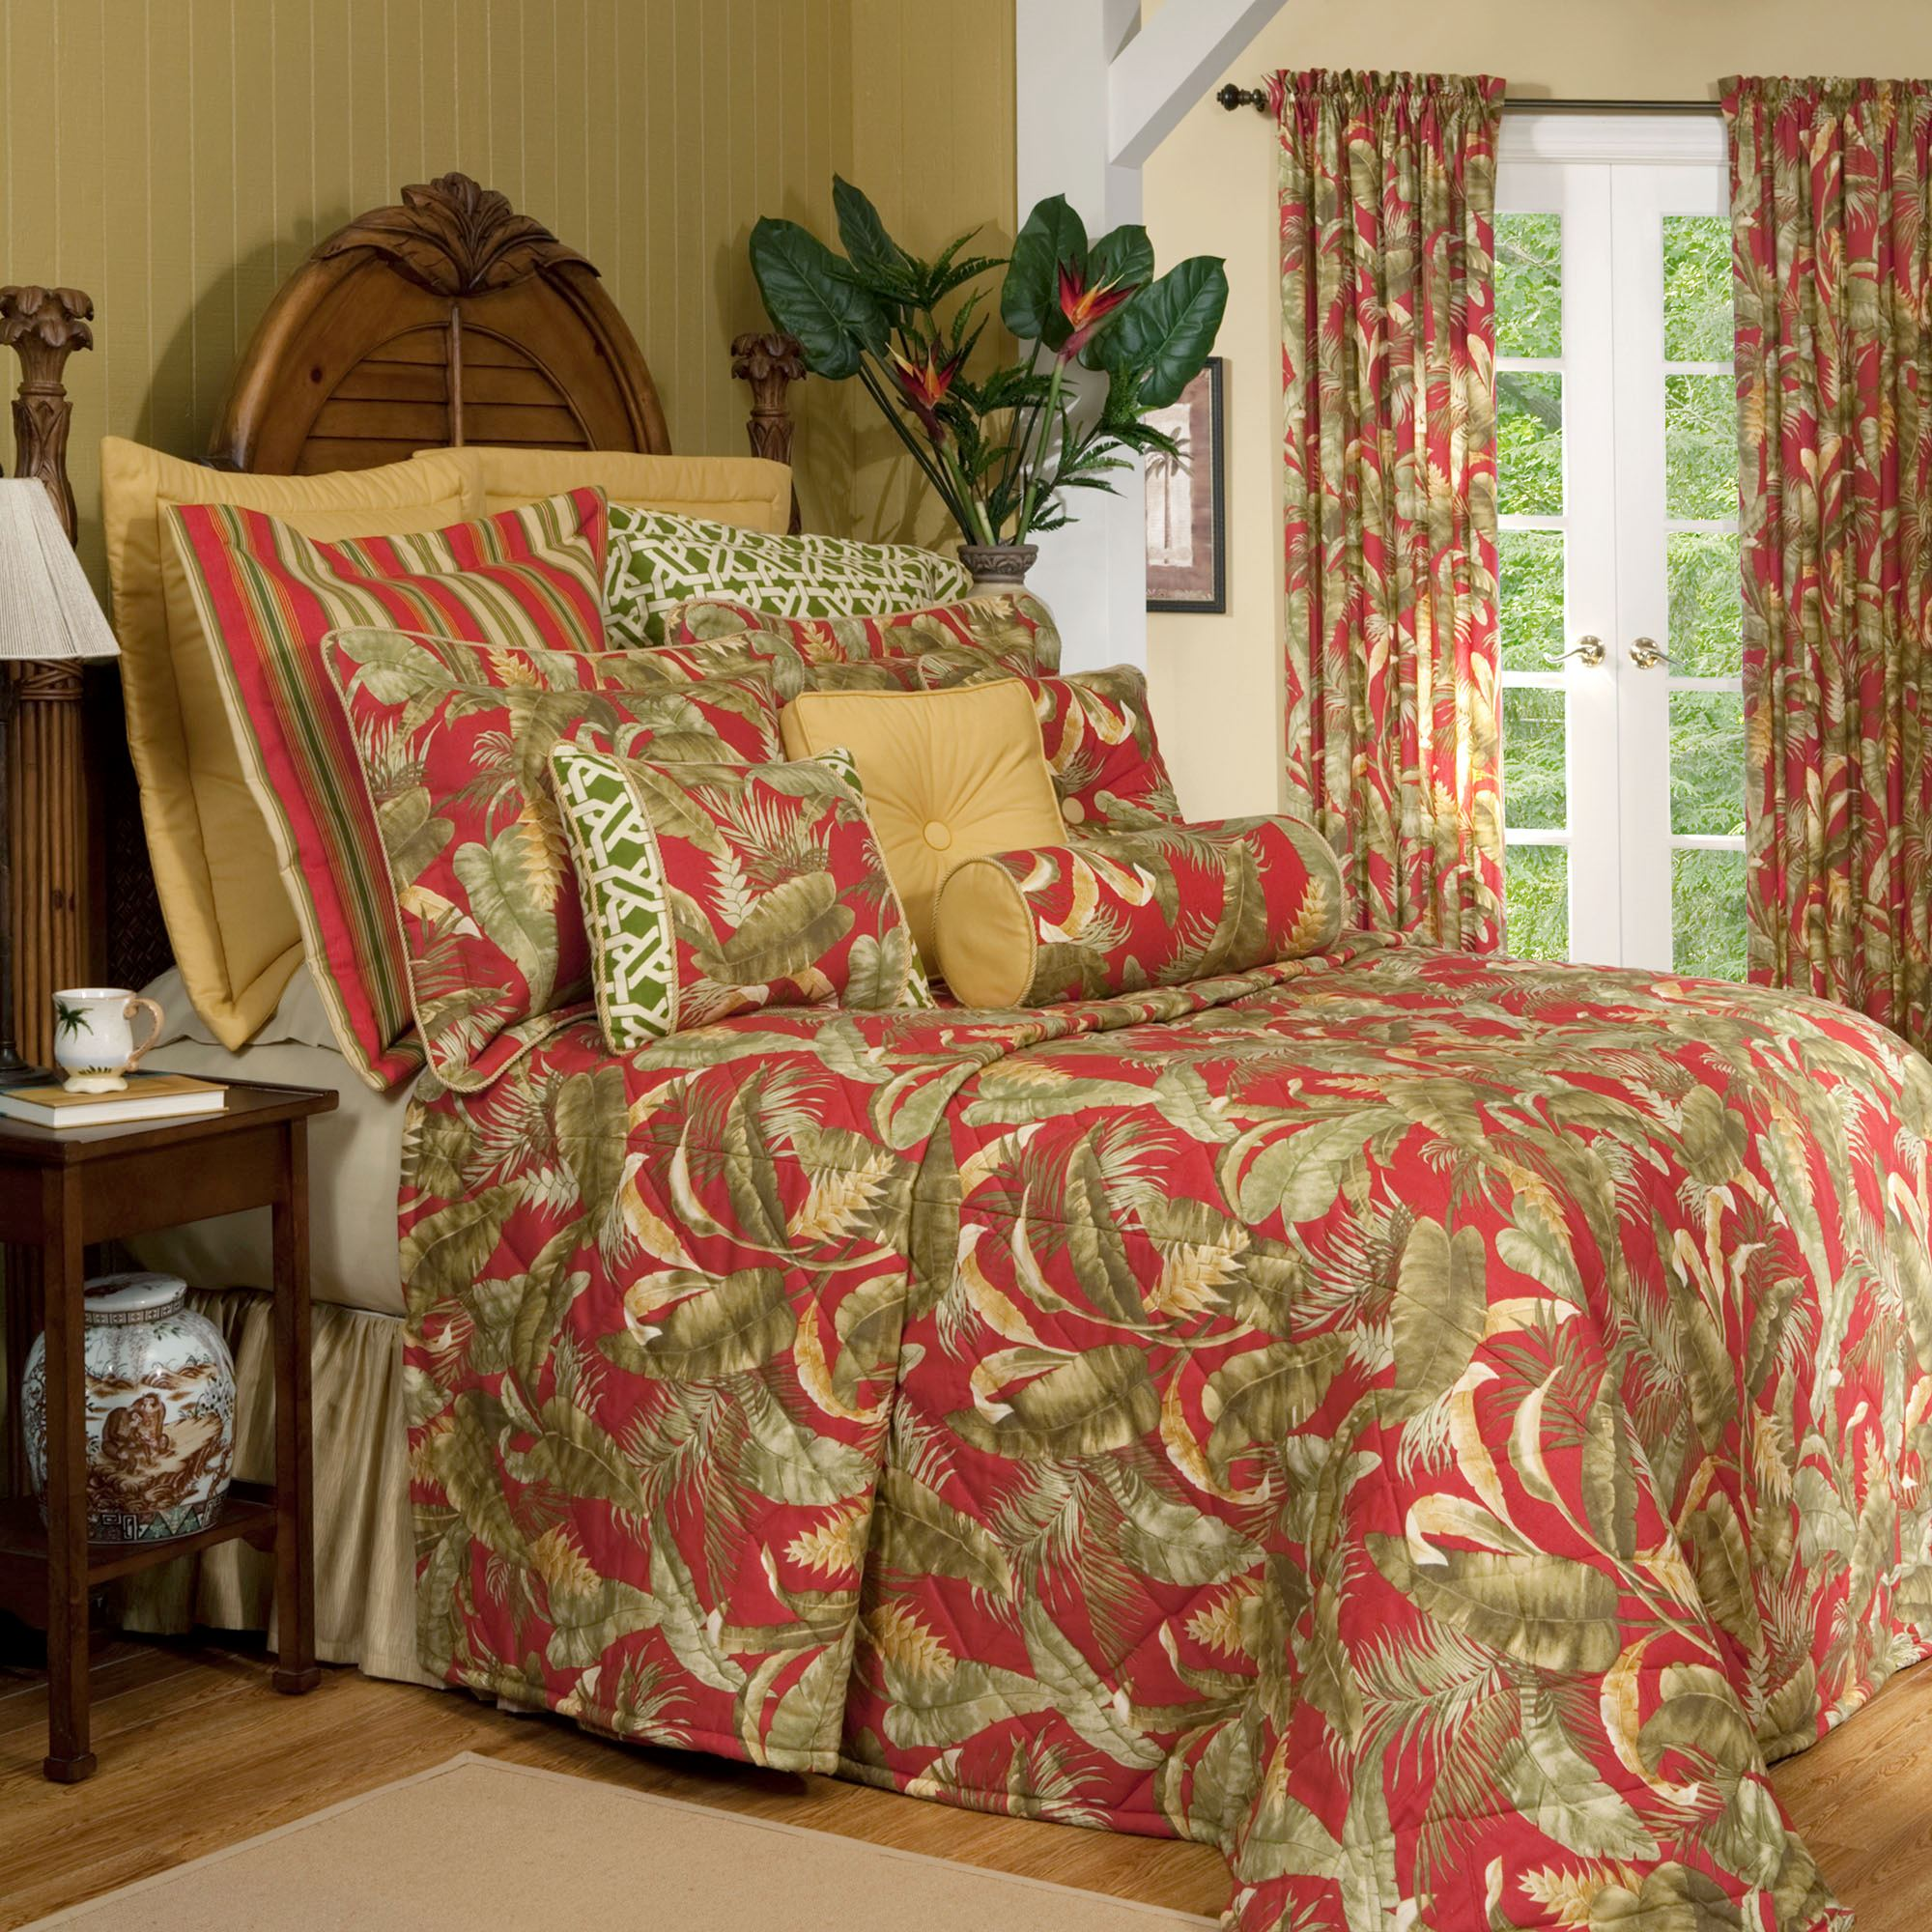 Captiva Dark Red Tropical Quilted Bedspread